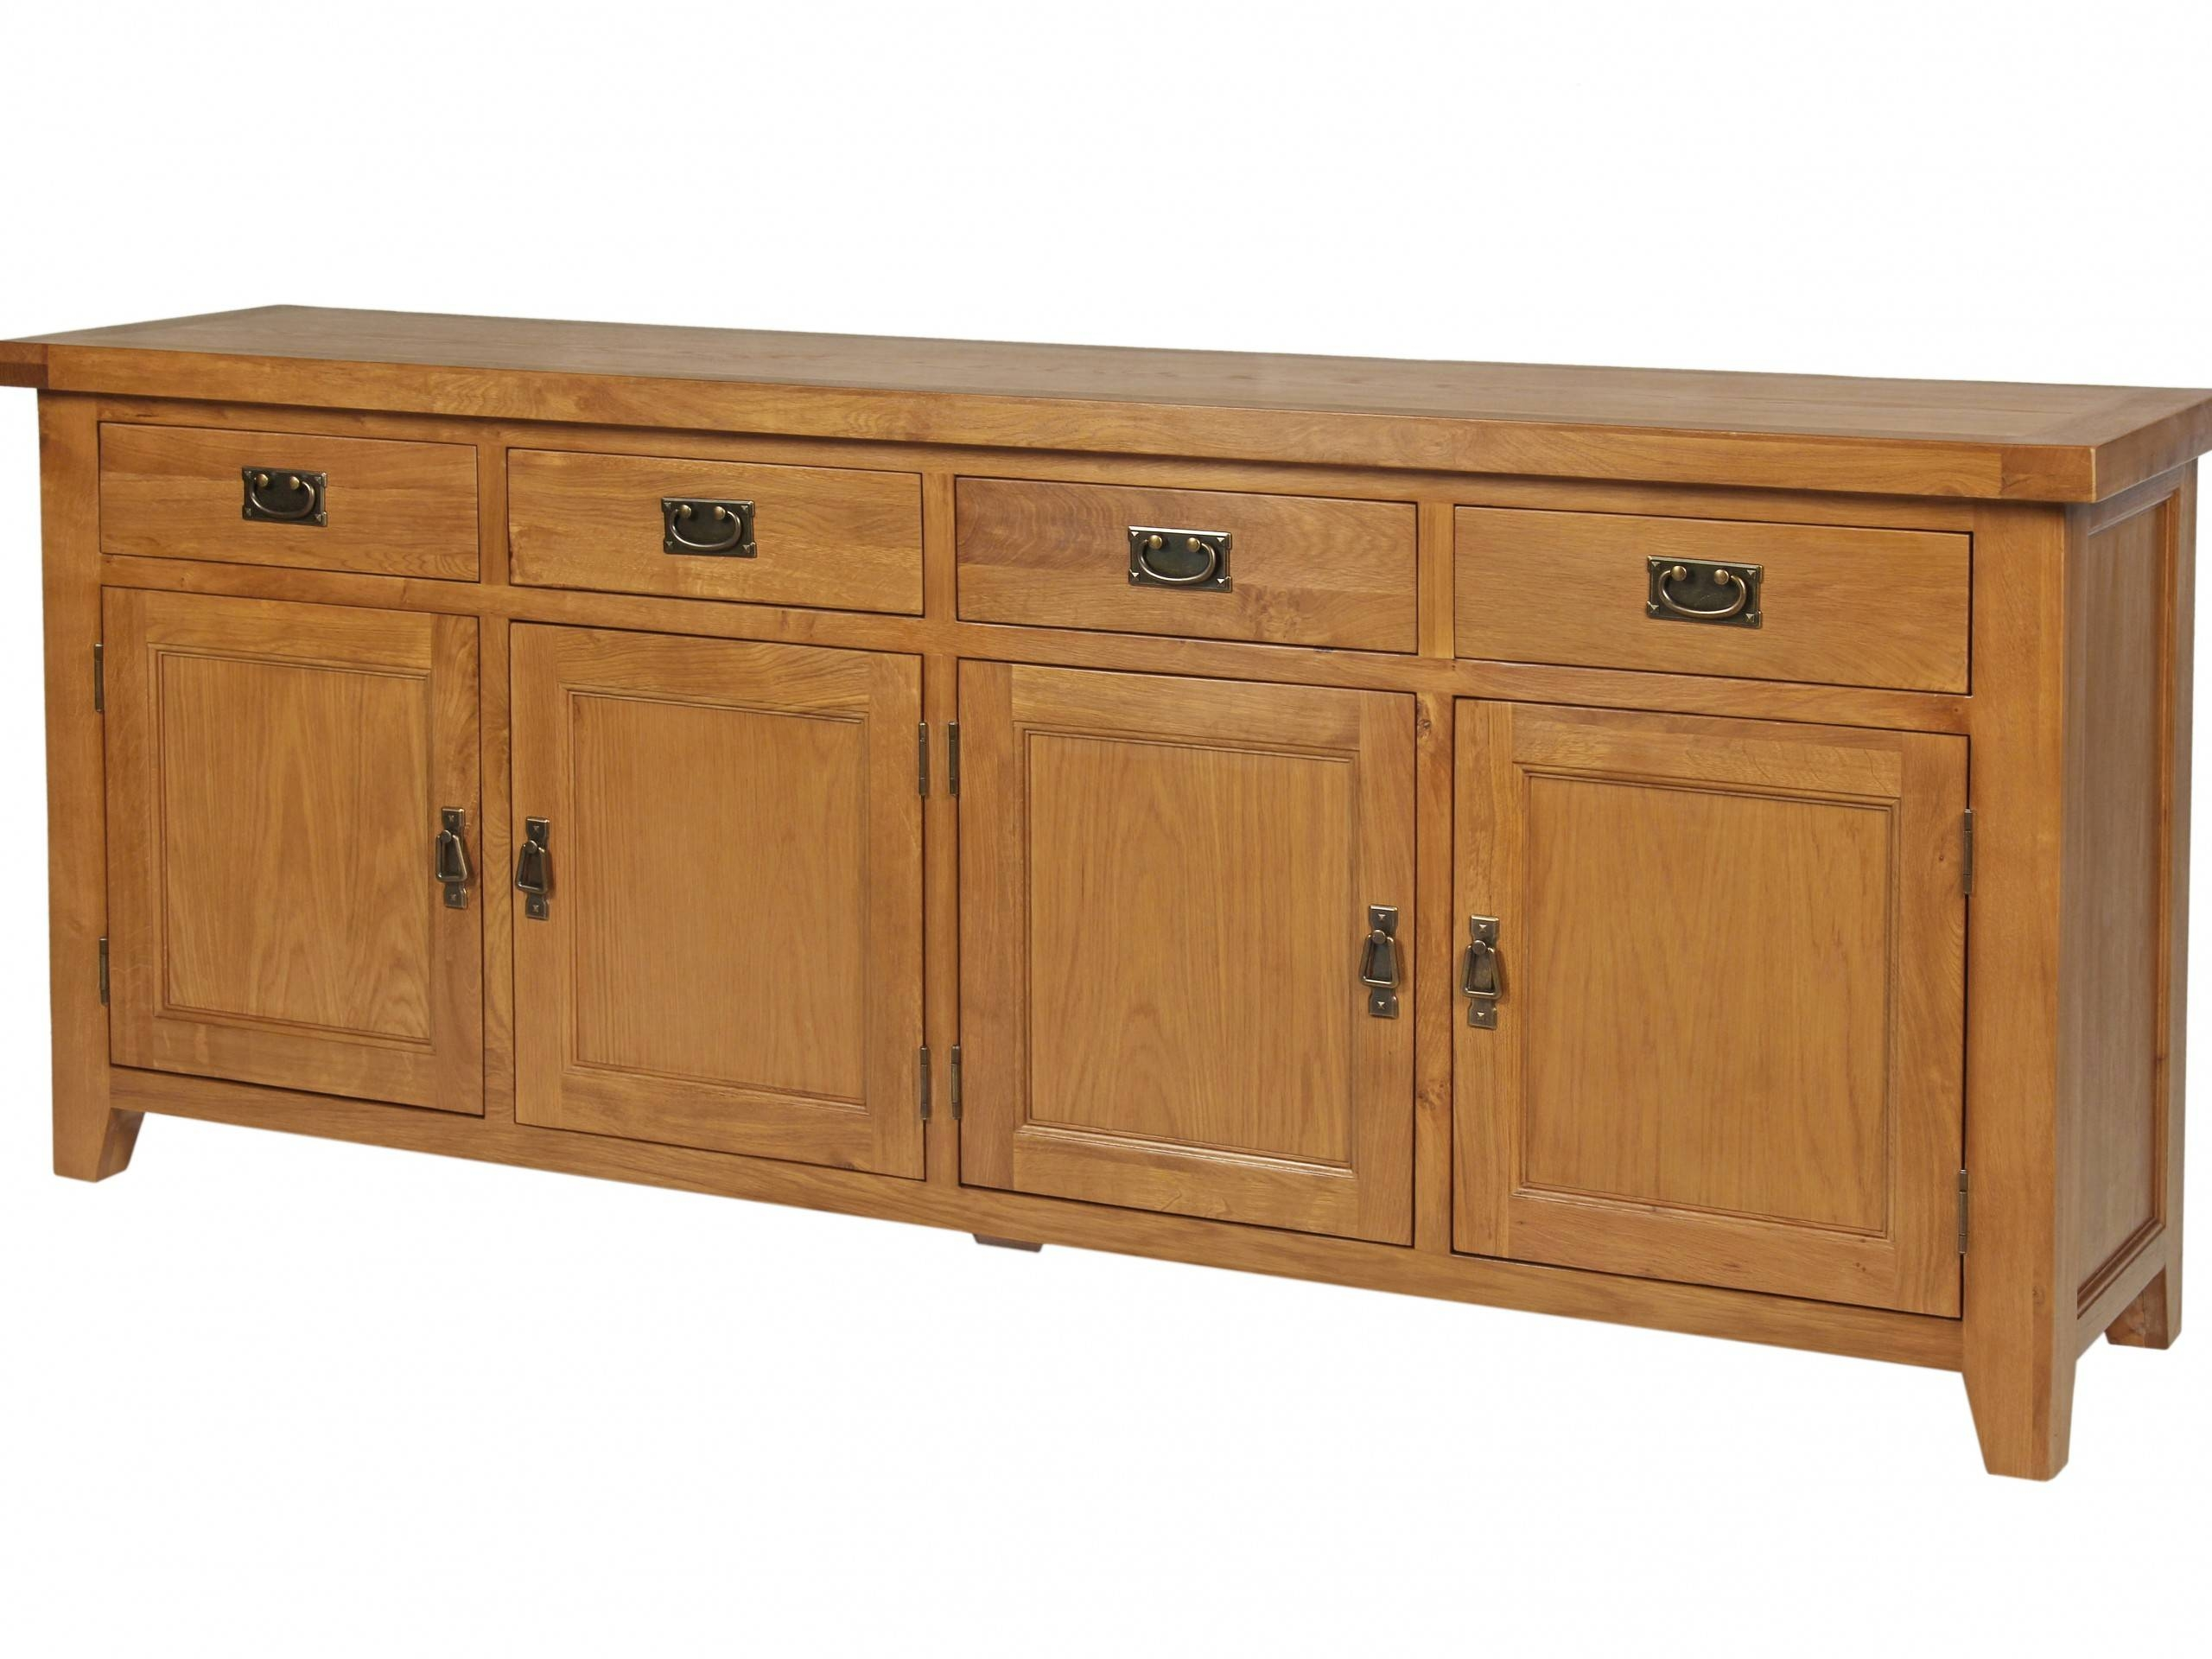 200Cm Large Country Oak Sideboard | Large Oak Sideboard throughout Oak Sideboards (Image 1 of 30)